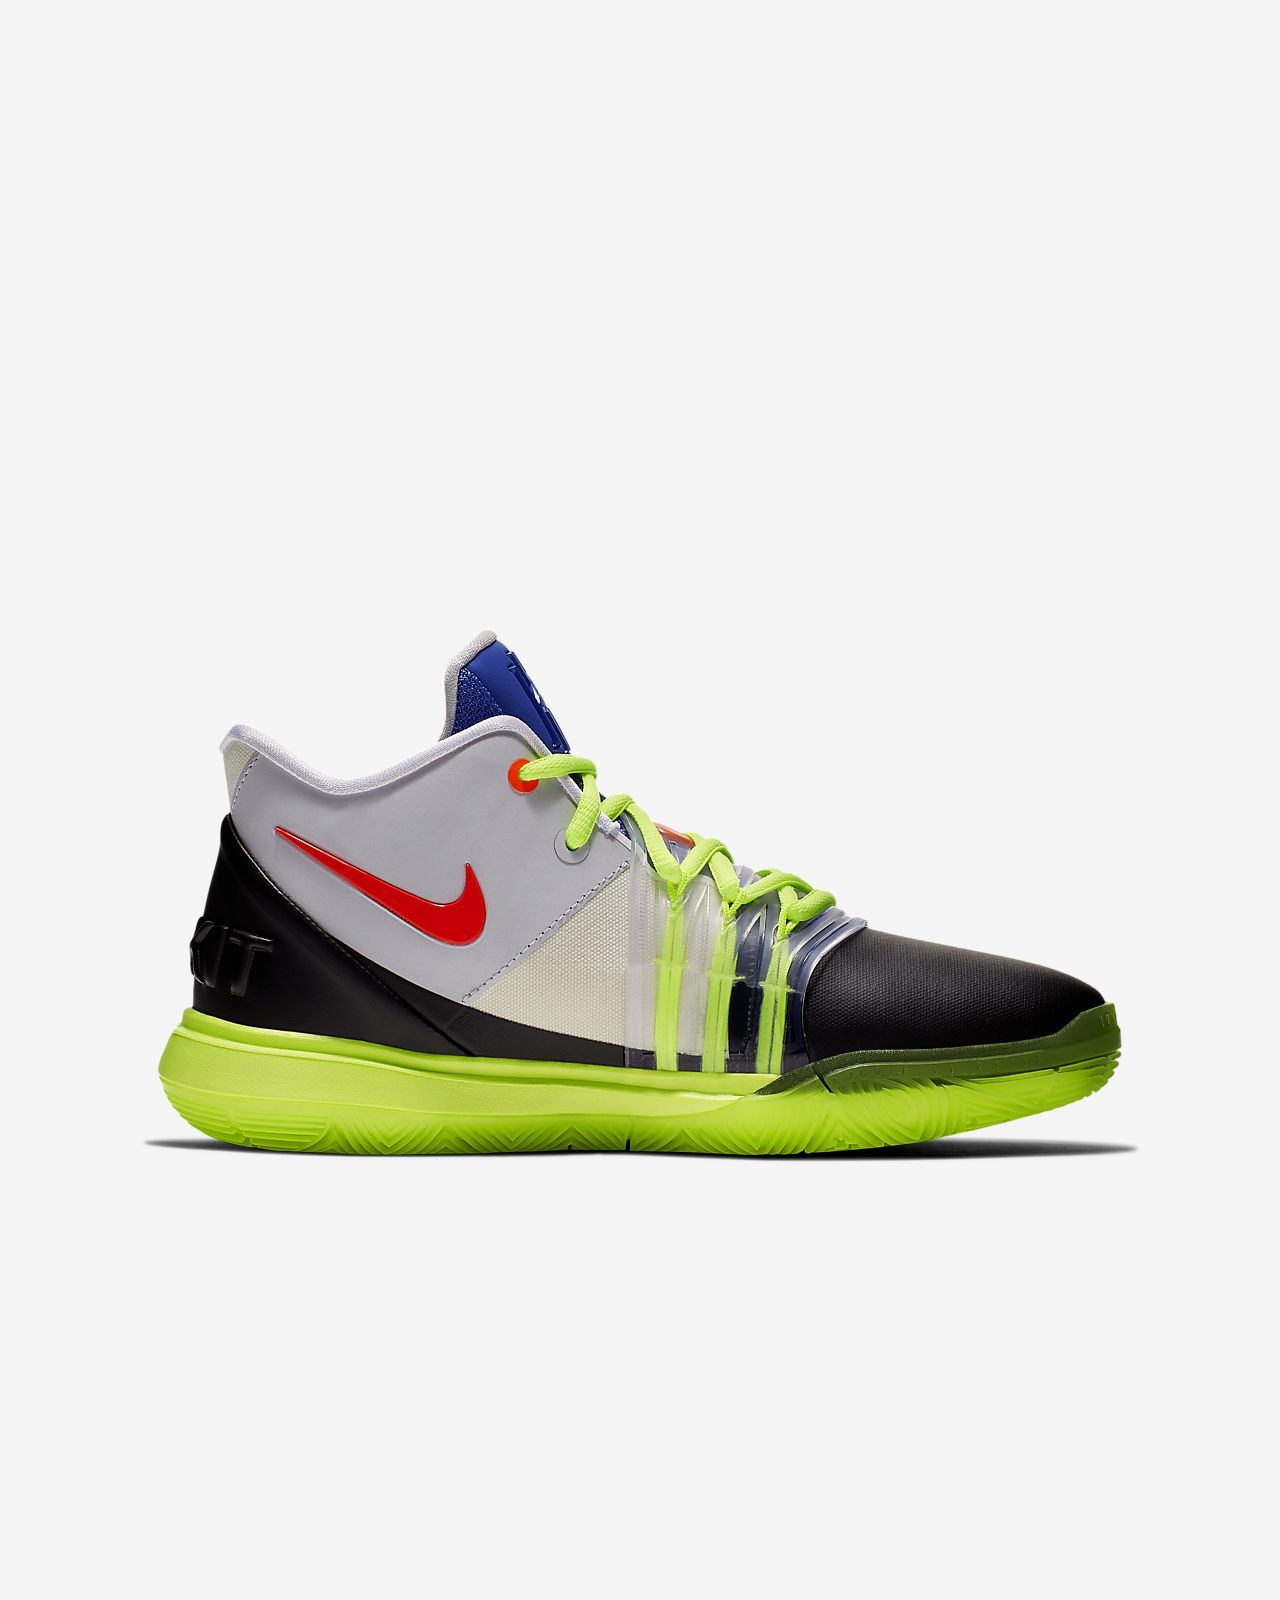 huge selection of 7ce5a be501 ... Kyrie 5 x ROKIT All Star Big Kids  Shoe